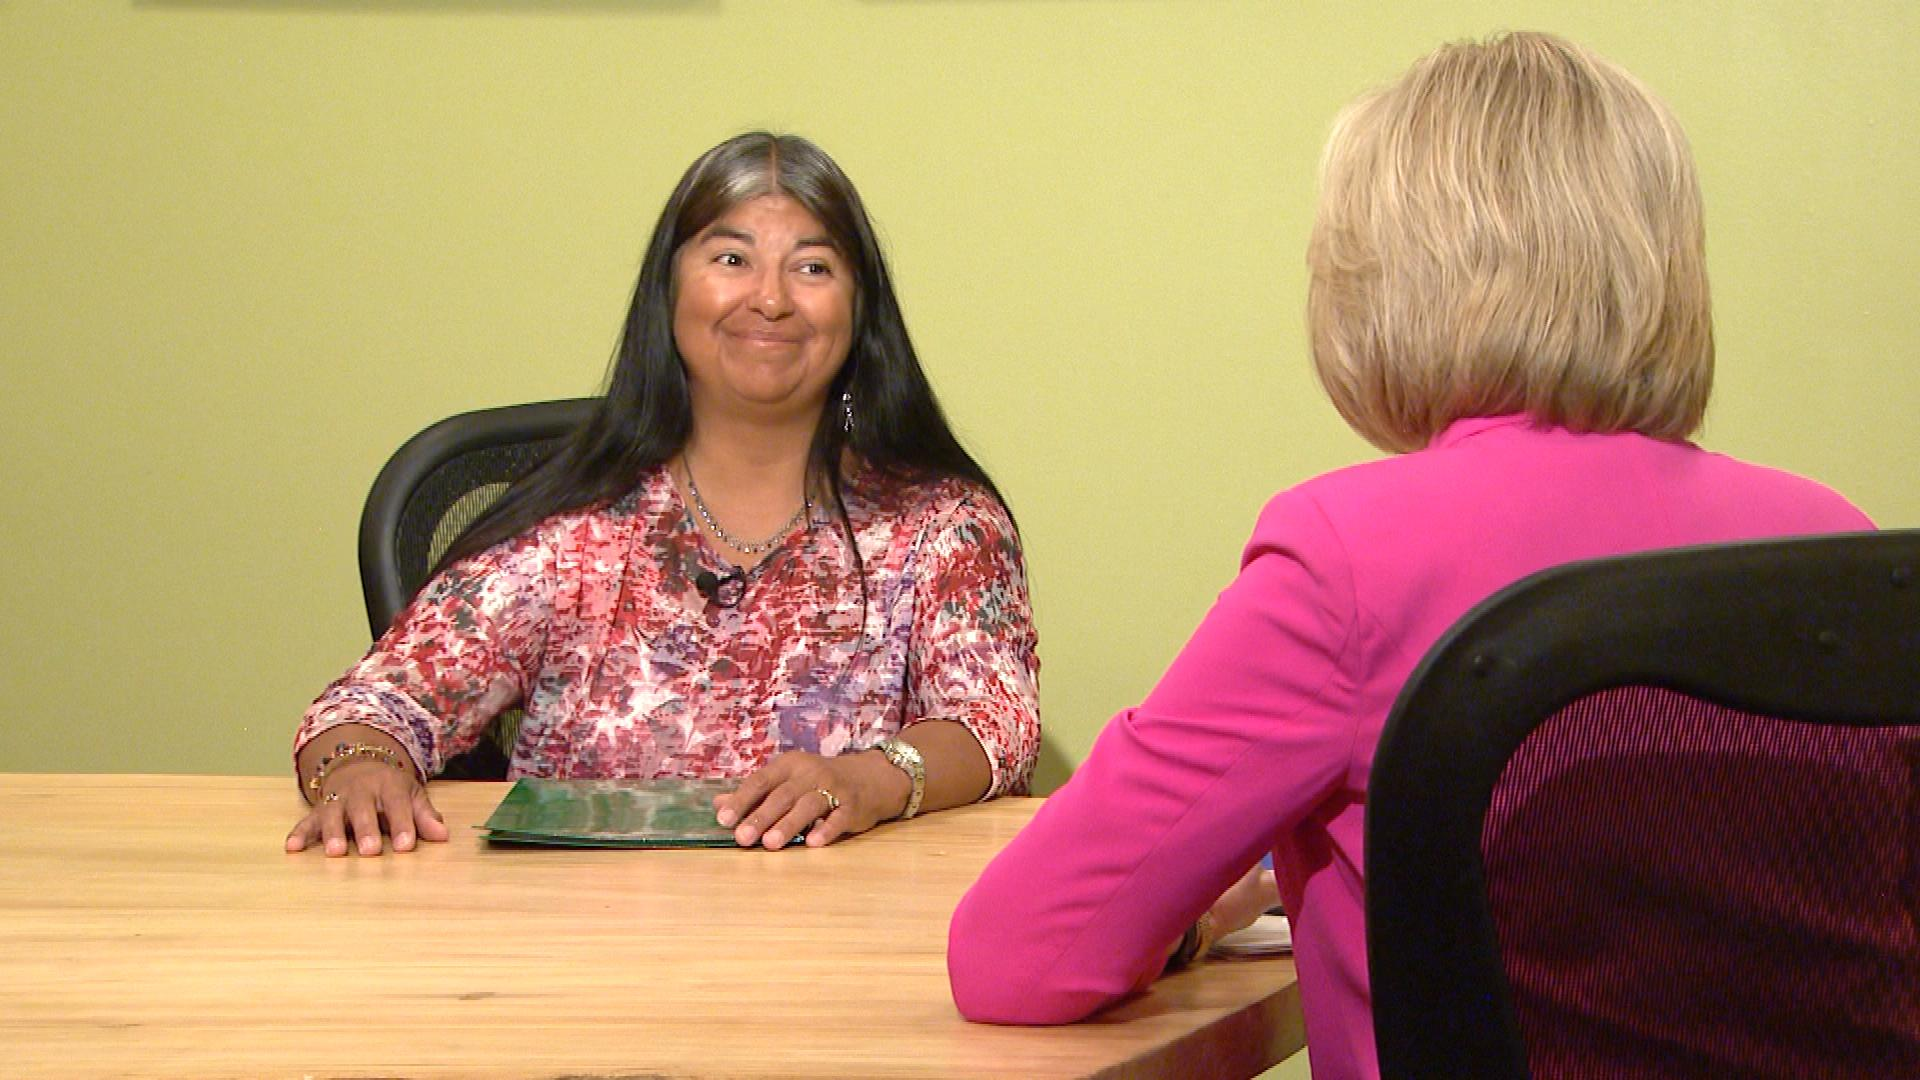 Sen. Irene Aguilar is interviewed by CBS4's Kathy Walsh (credit: CBS)